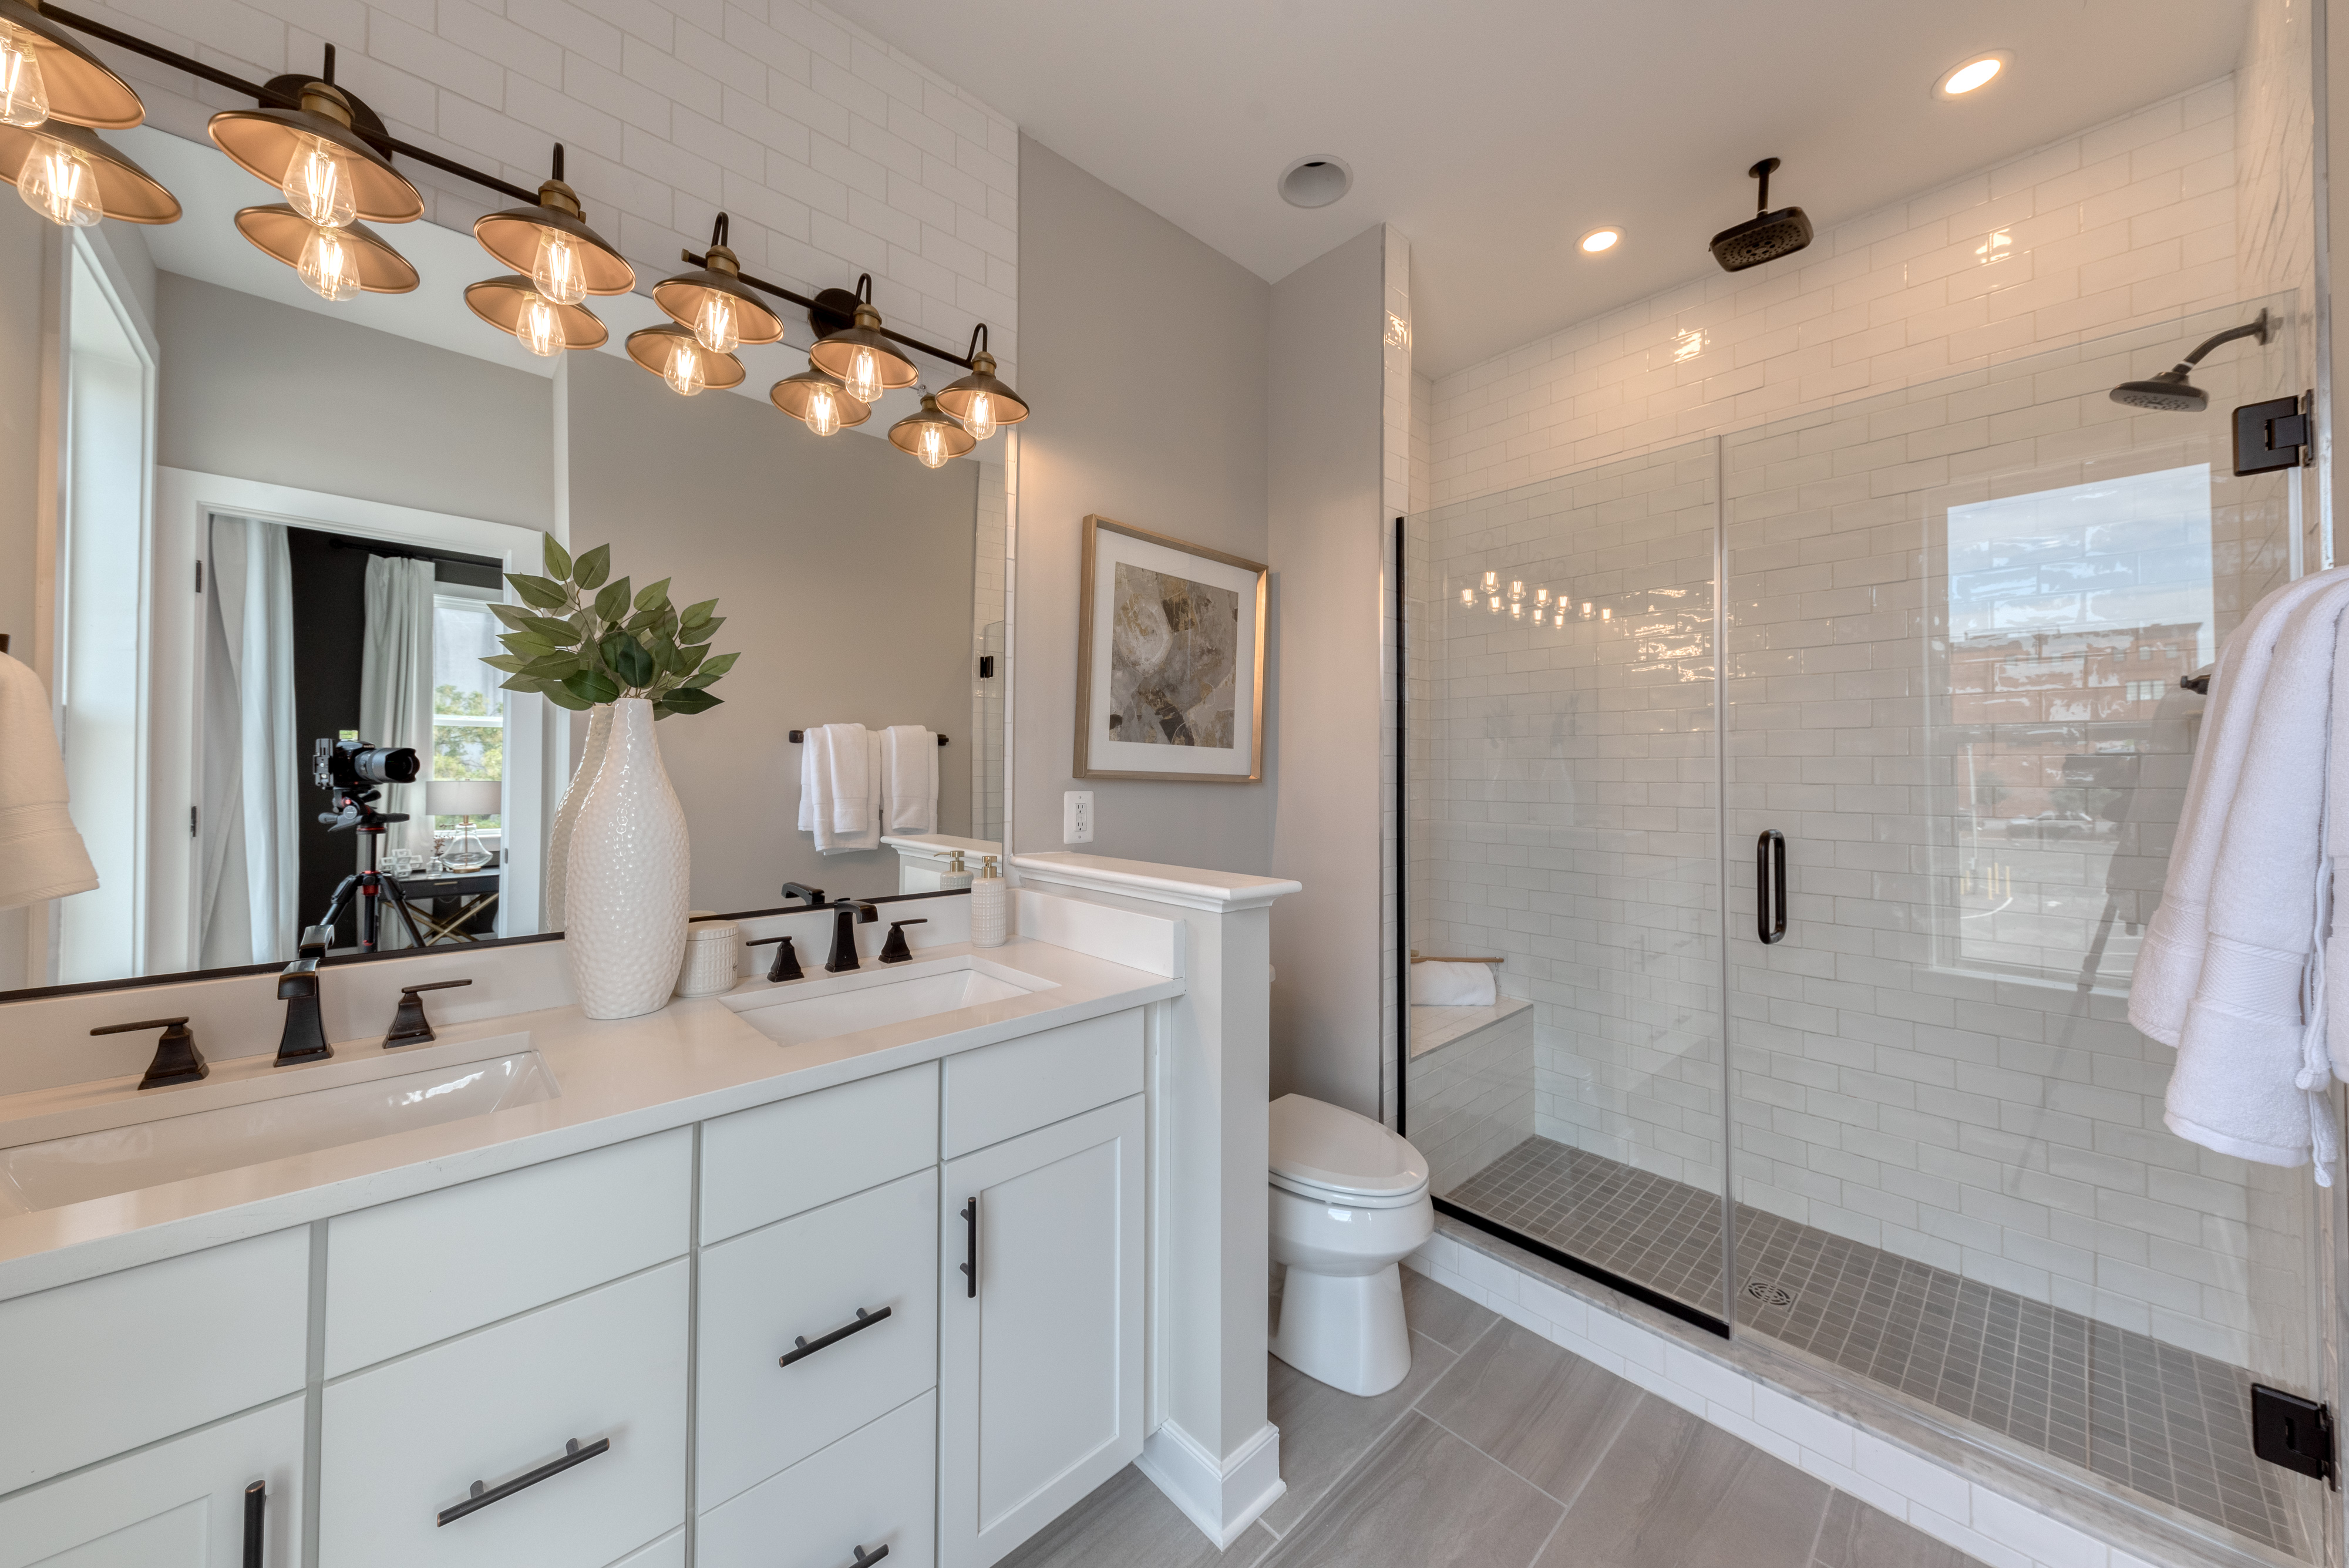 Second Owners Shower with Frameless Shower Door, White Tile, and Black Hardware